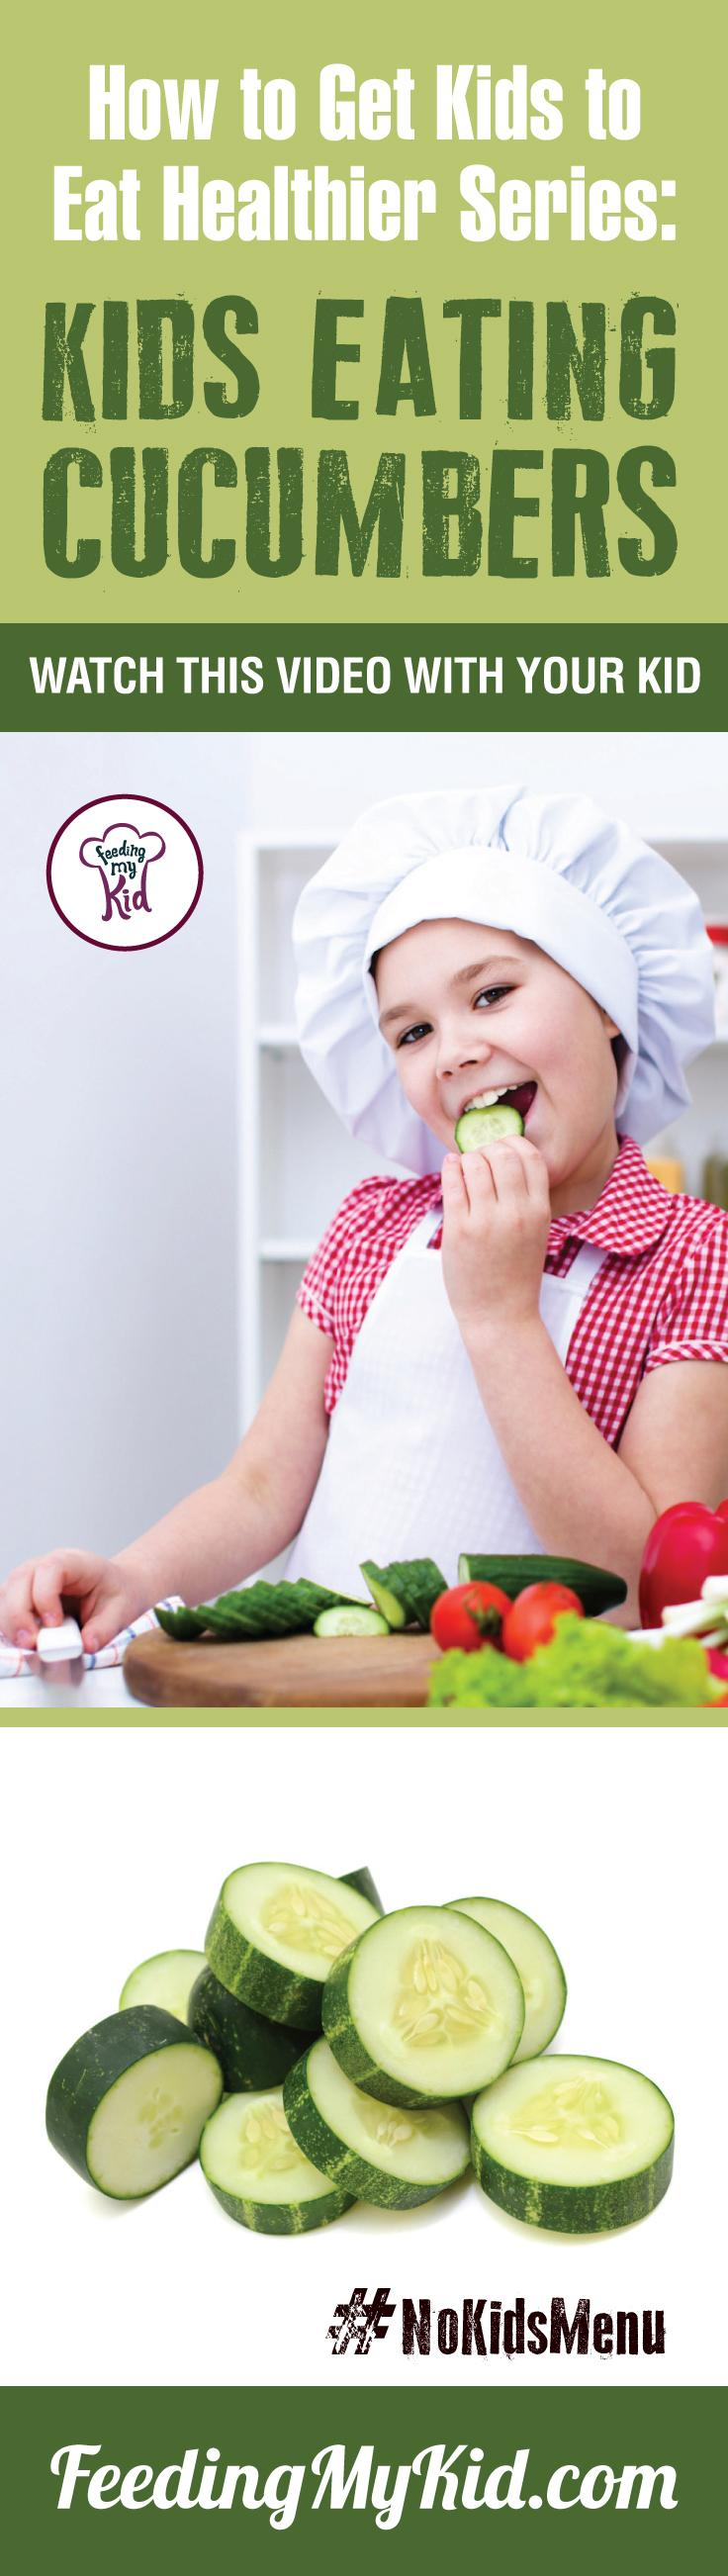 Want your kids to eat cucumbers? You can teach your kids healthy eating habits. Watch these videos with your kids of children eating veggies and fruits and get your kids to eat veggies and fruits. Find out how it works here. Feeding My Kid is a filled with all the information you need about how to raise your kids, from healthy tips to nutritious recipes. #FeedingMyKid #pickyeating #getkidstoeat #cucumbers #nokidsmenu